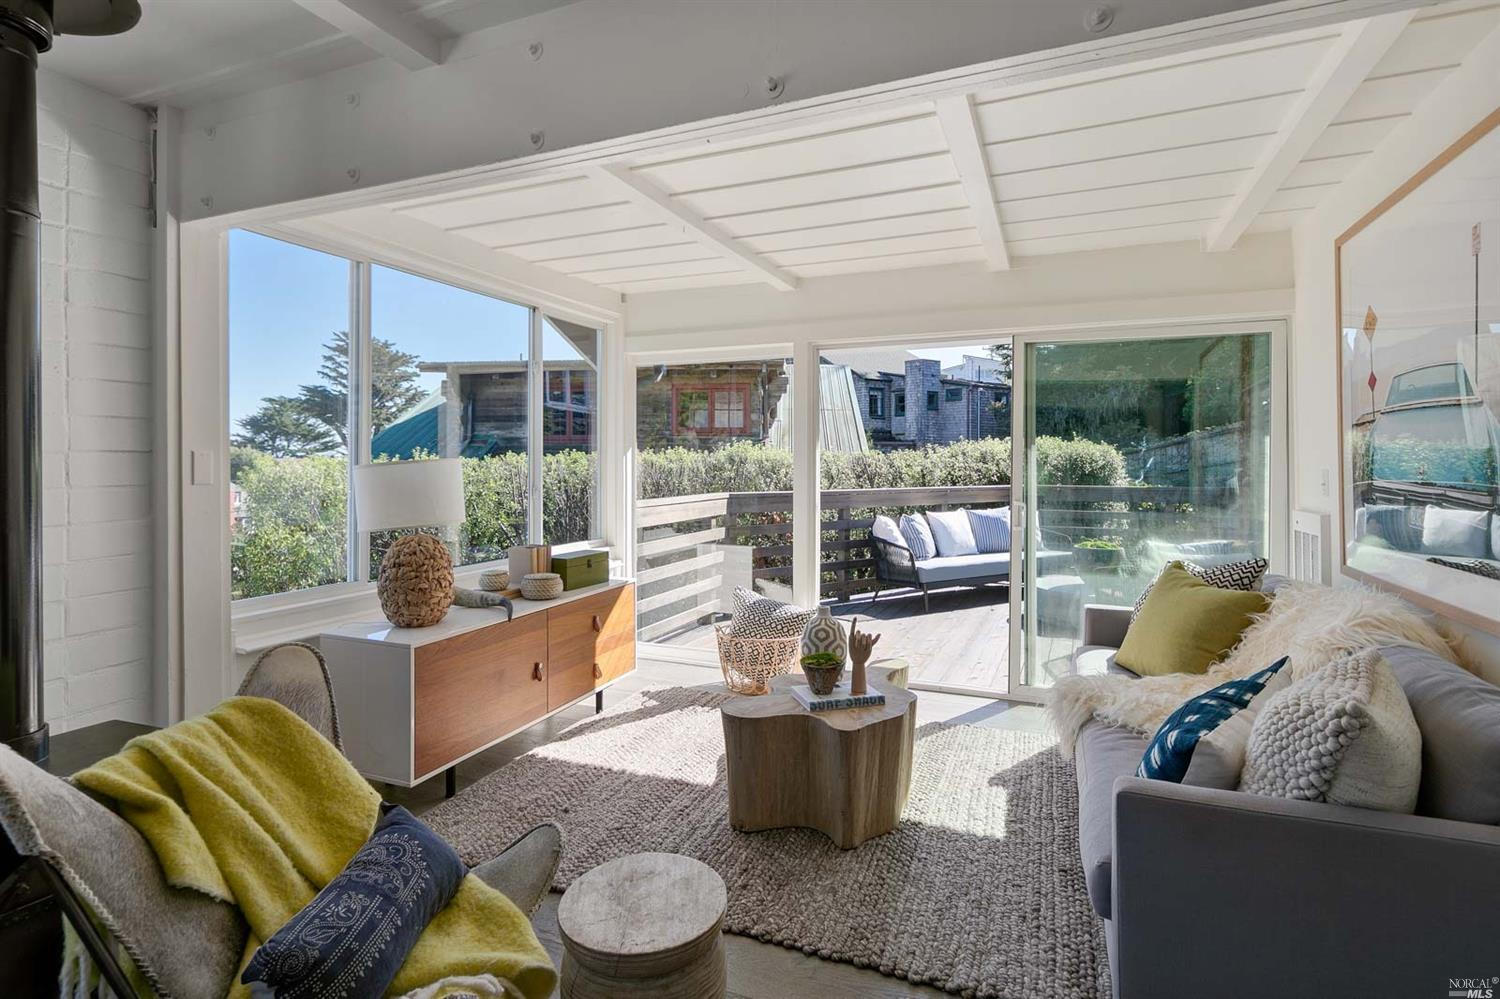 The Ultimate Bolinas Surf Shack hits the market for the first time in 30+ years!  Hidden in the secret, bohemian community of Bolinas is this Surfer's dream home.  Just steps to the Hawaii-esque break of Brighton Beach, this home and its location are like no other.  The main house features 3 bedrooms with a remodeled kitchen and 2 updated baths.  This quintessential bohemian bungalow comes with a centerpiece Franklin fireplace in the main living room with direct views of the beach.  You will love the indoor-outdoor vibe with its extra-large, southeast facing sky deck.  The home also includes an artisan guest studio with kitchenette, full bath, private deck, and herb garden.  Sitting on an exceptionally large corner lot, you are walking distance to town and to the beach.  Aloha!